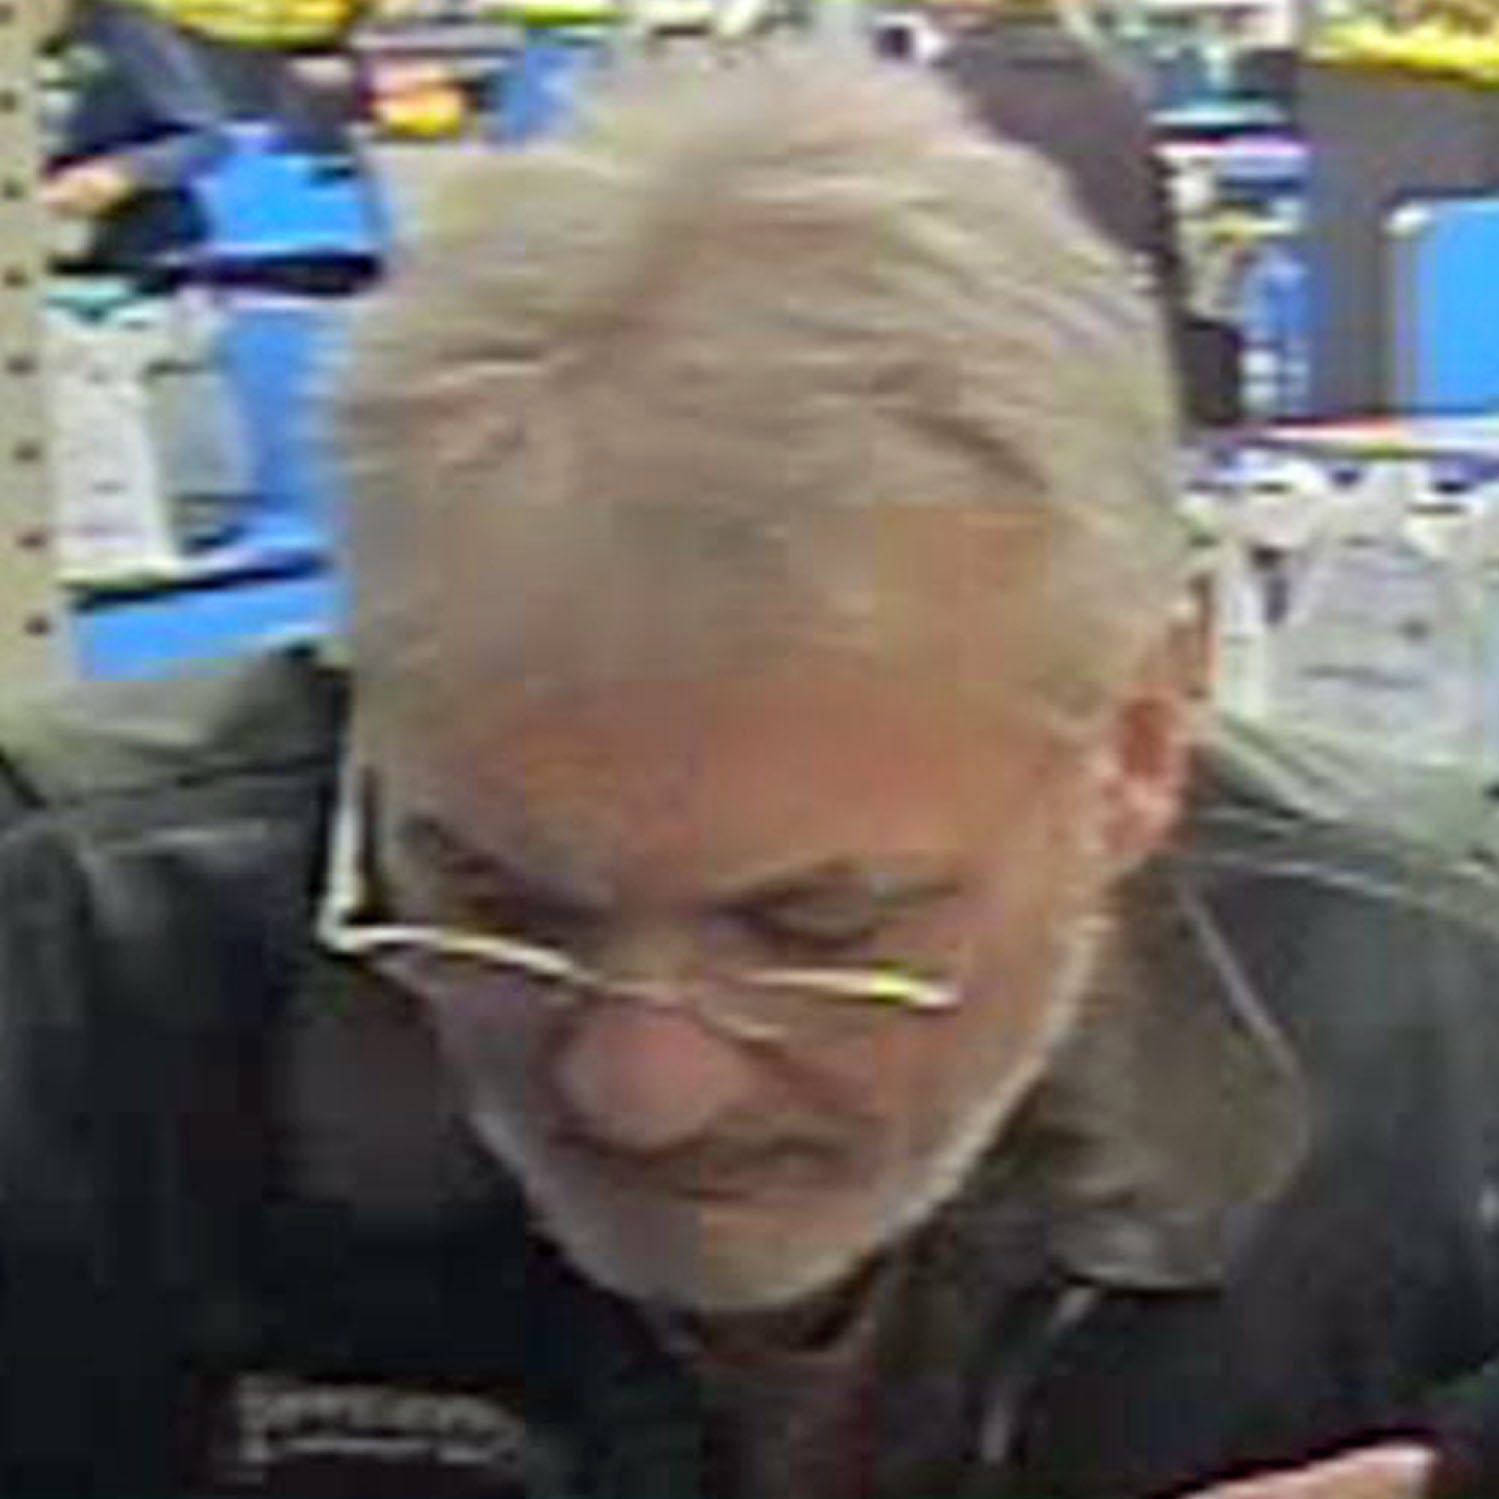 Police identify suspect who tried to take shopper at Salem Walmart